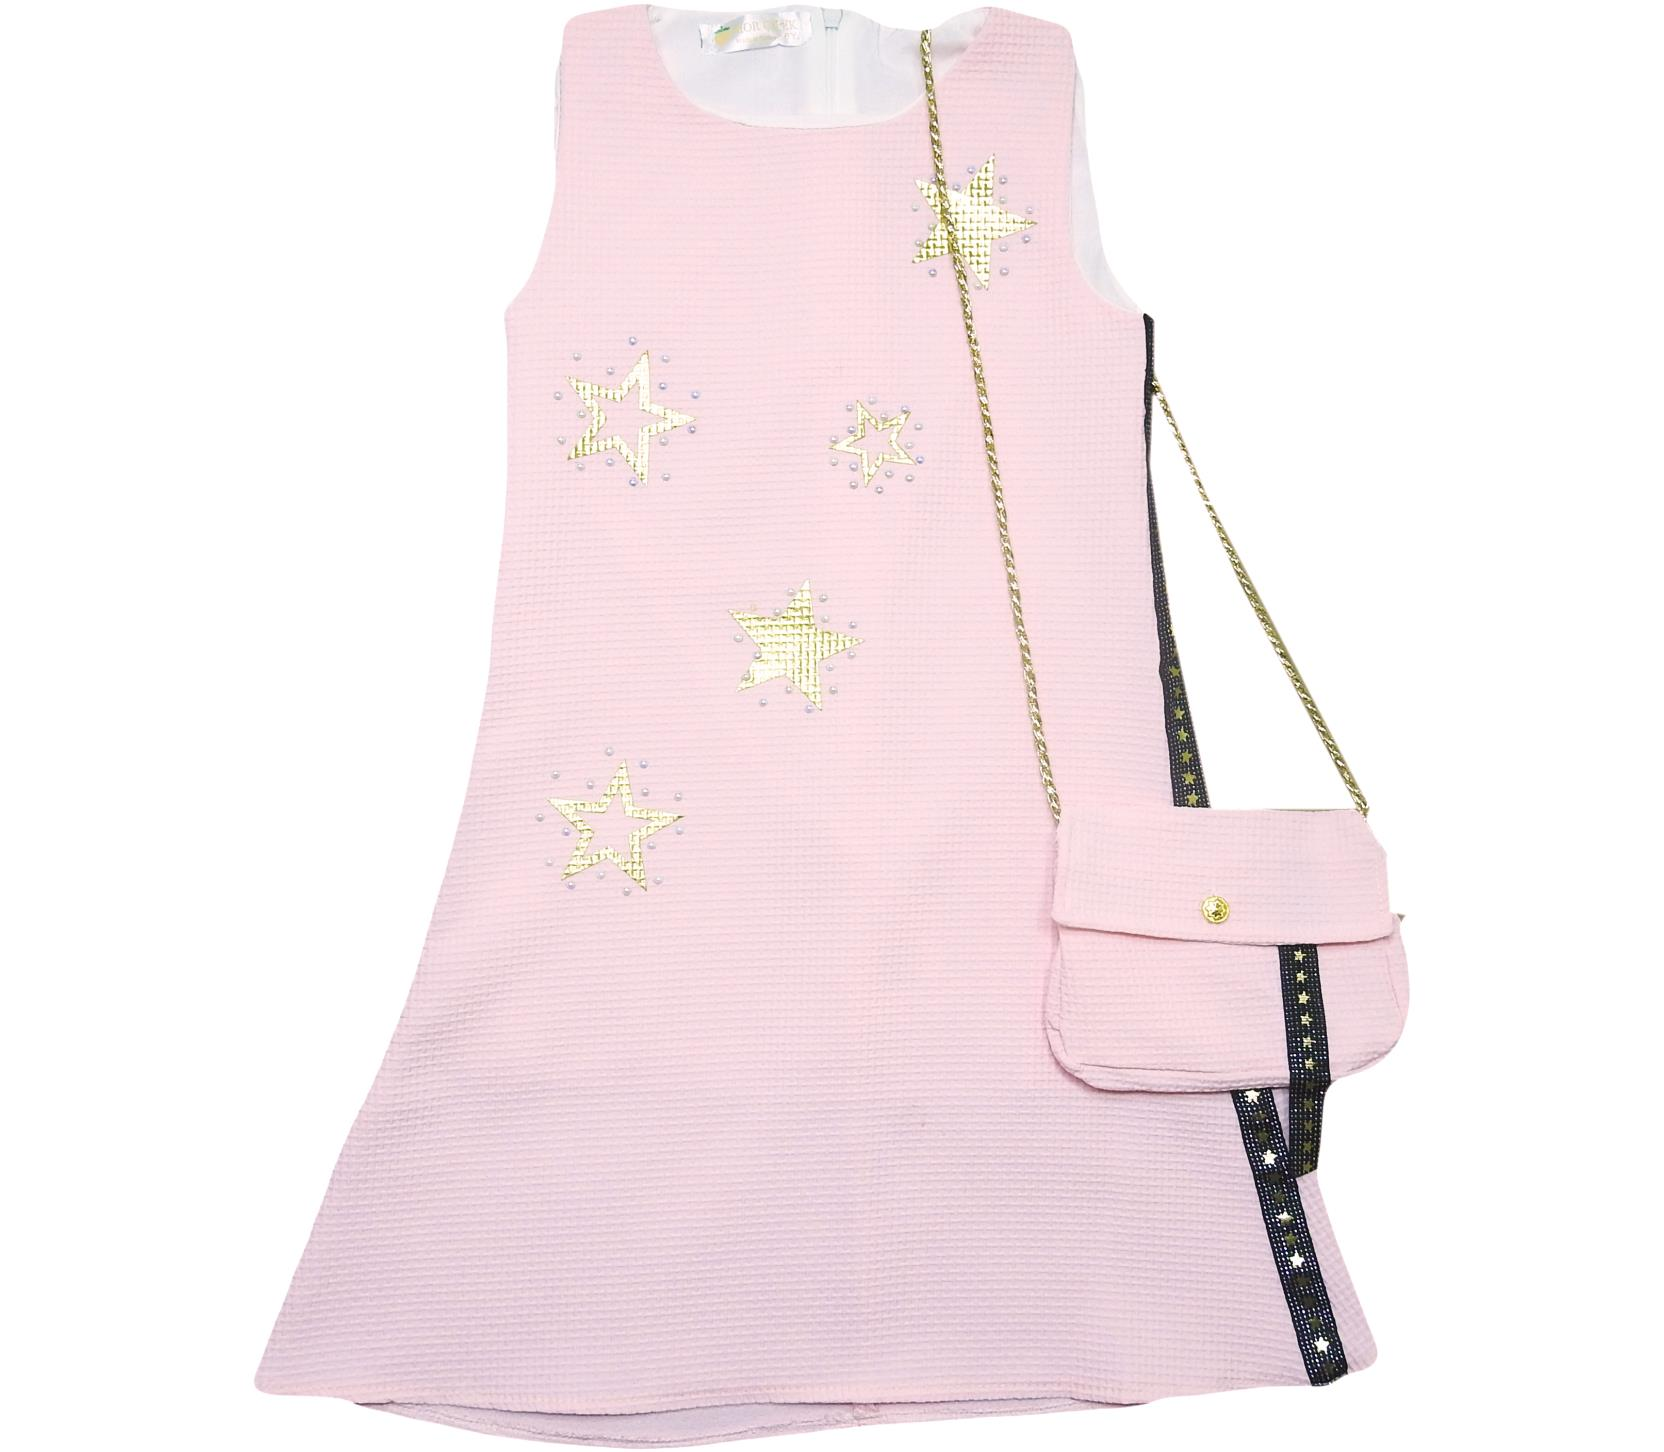 641 wholesale children's summer sundresses, dresses with handbag,for girls 6-7-8-9 age